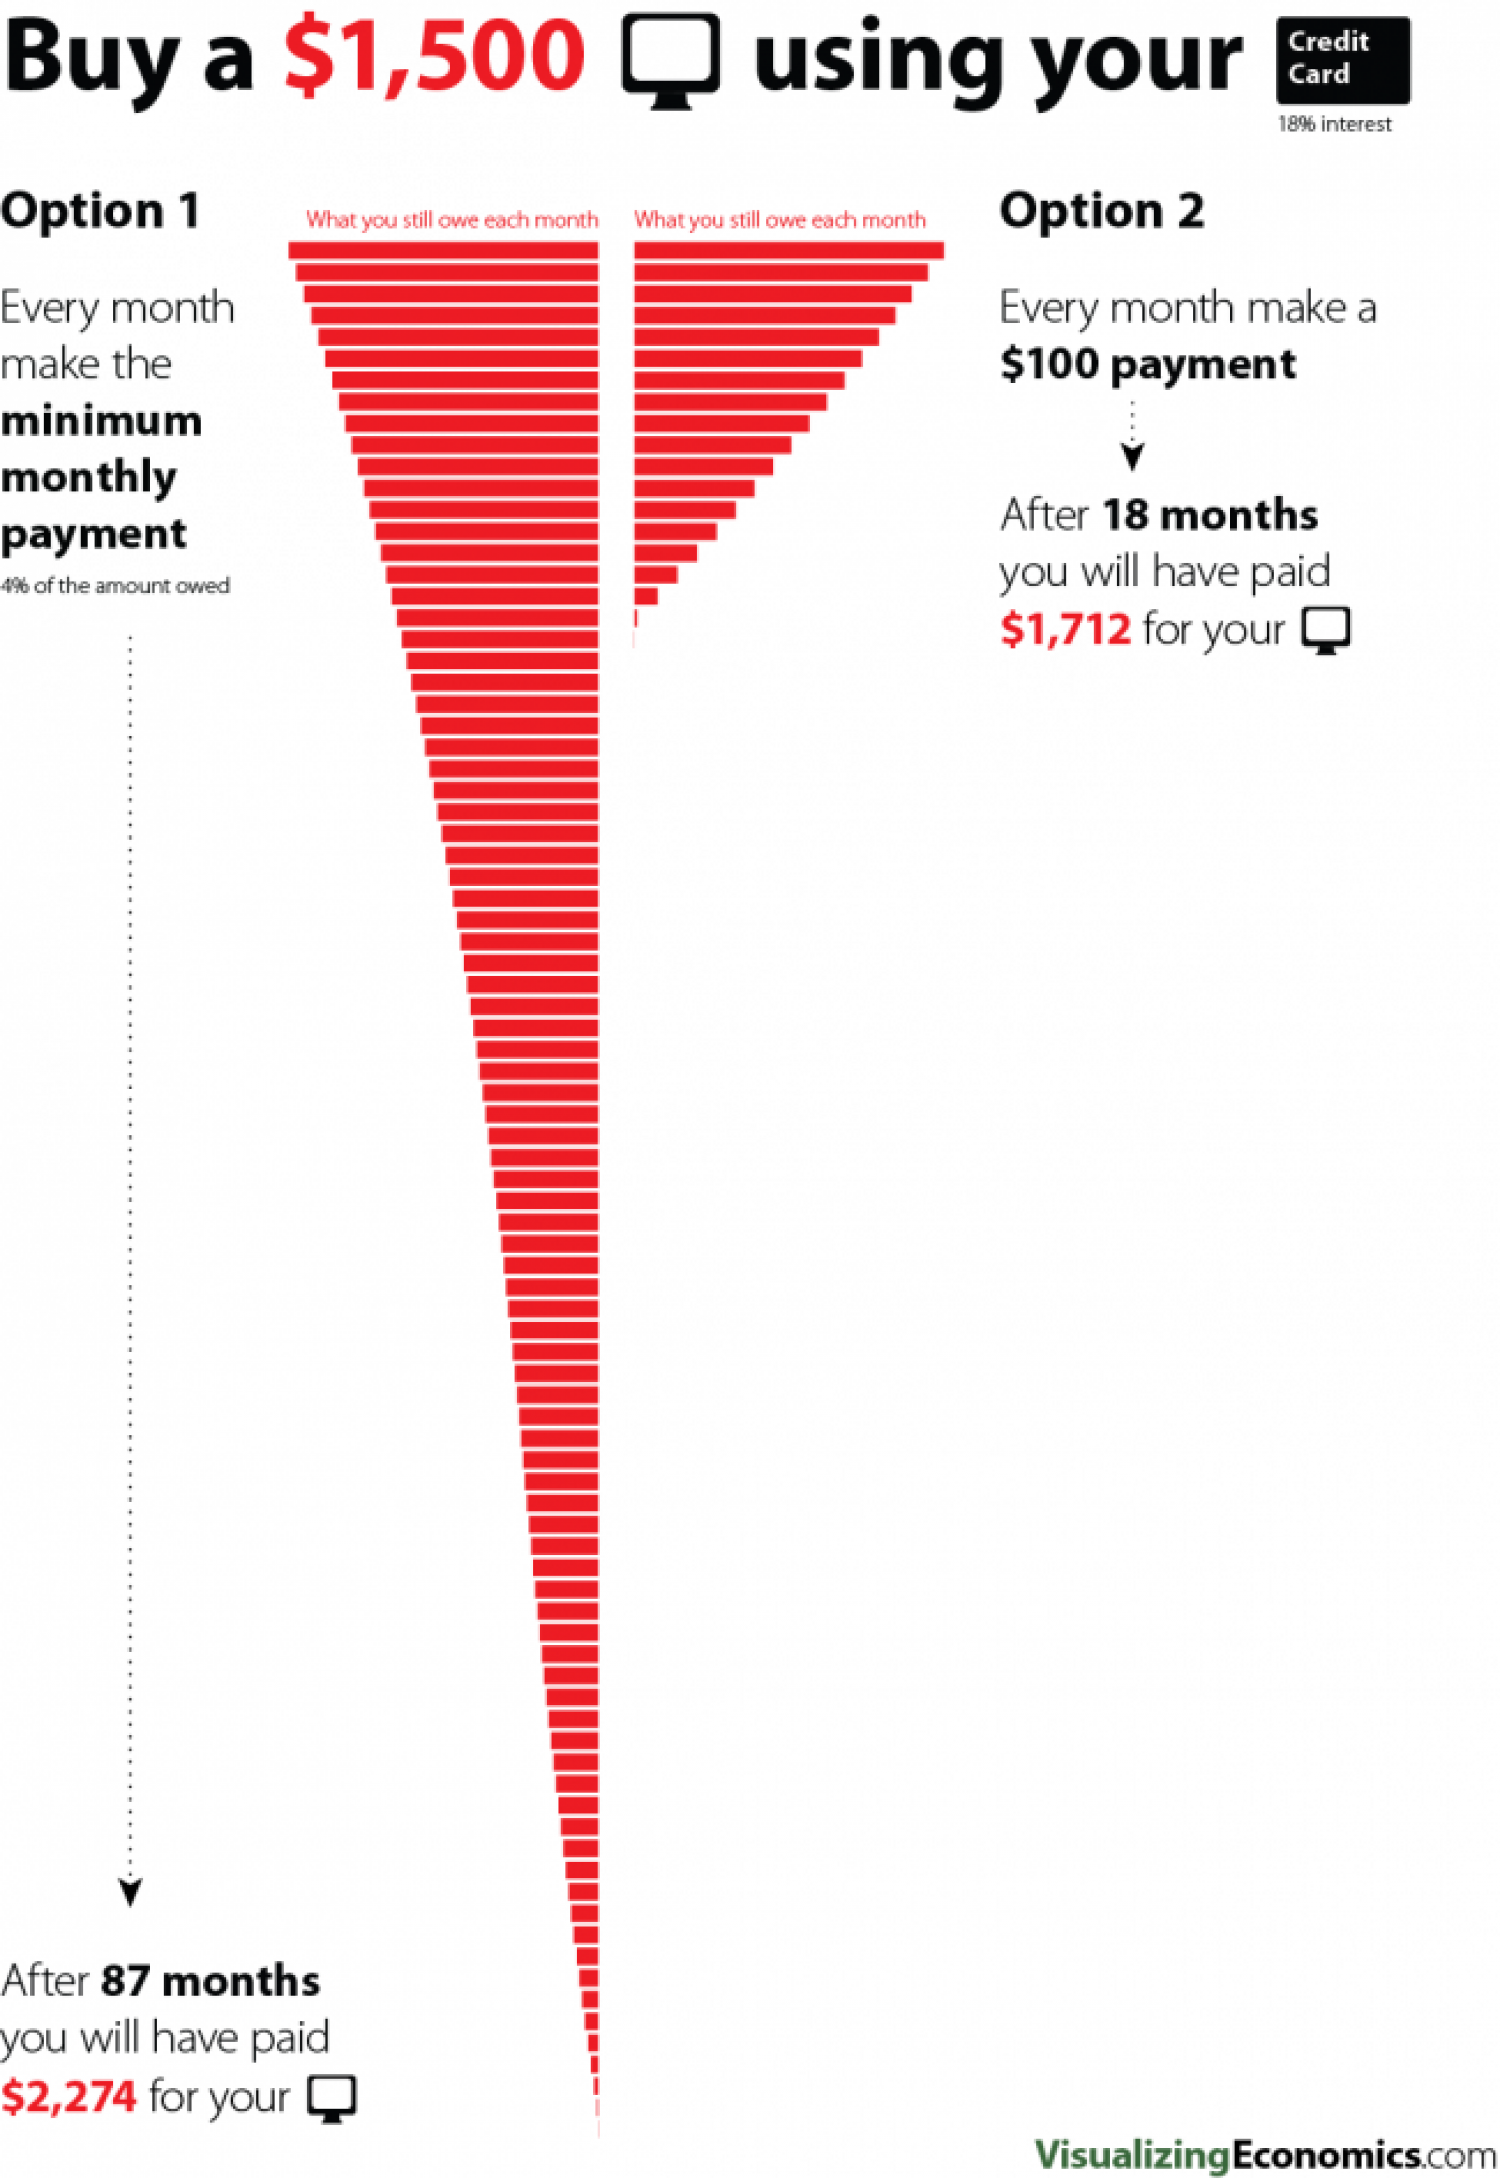 Buy a $1,500 Computer Using Your Credit Card Infographic